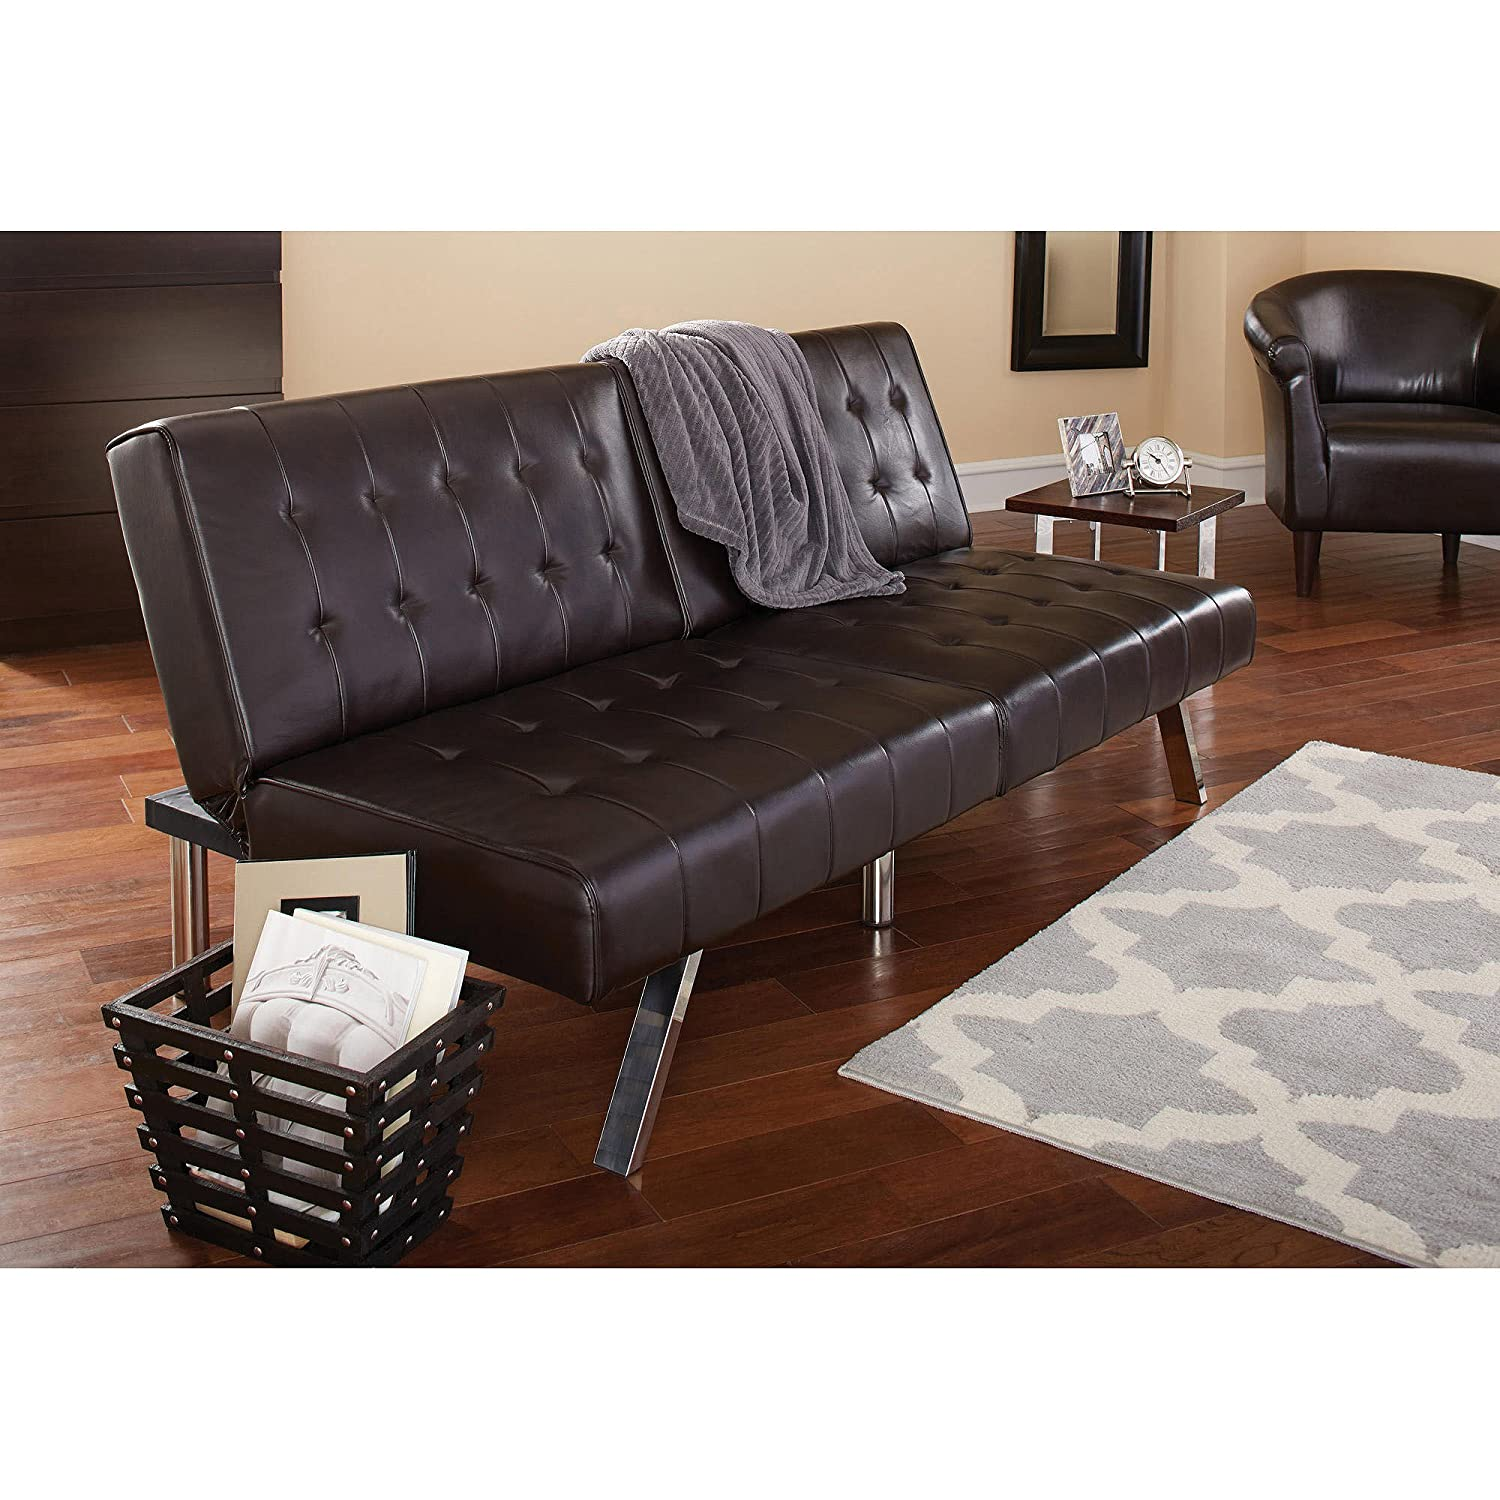 Outstanding Quick 3 In 1 Sofa Lounger Sleeper Morgan Faux Leather Upholstery Brown Tufted Convertible Futon Short Links Chair Design For Home Short Linksinfo